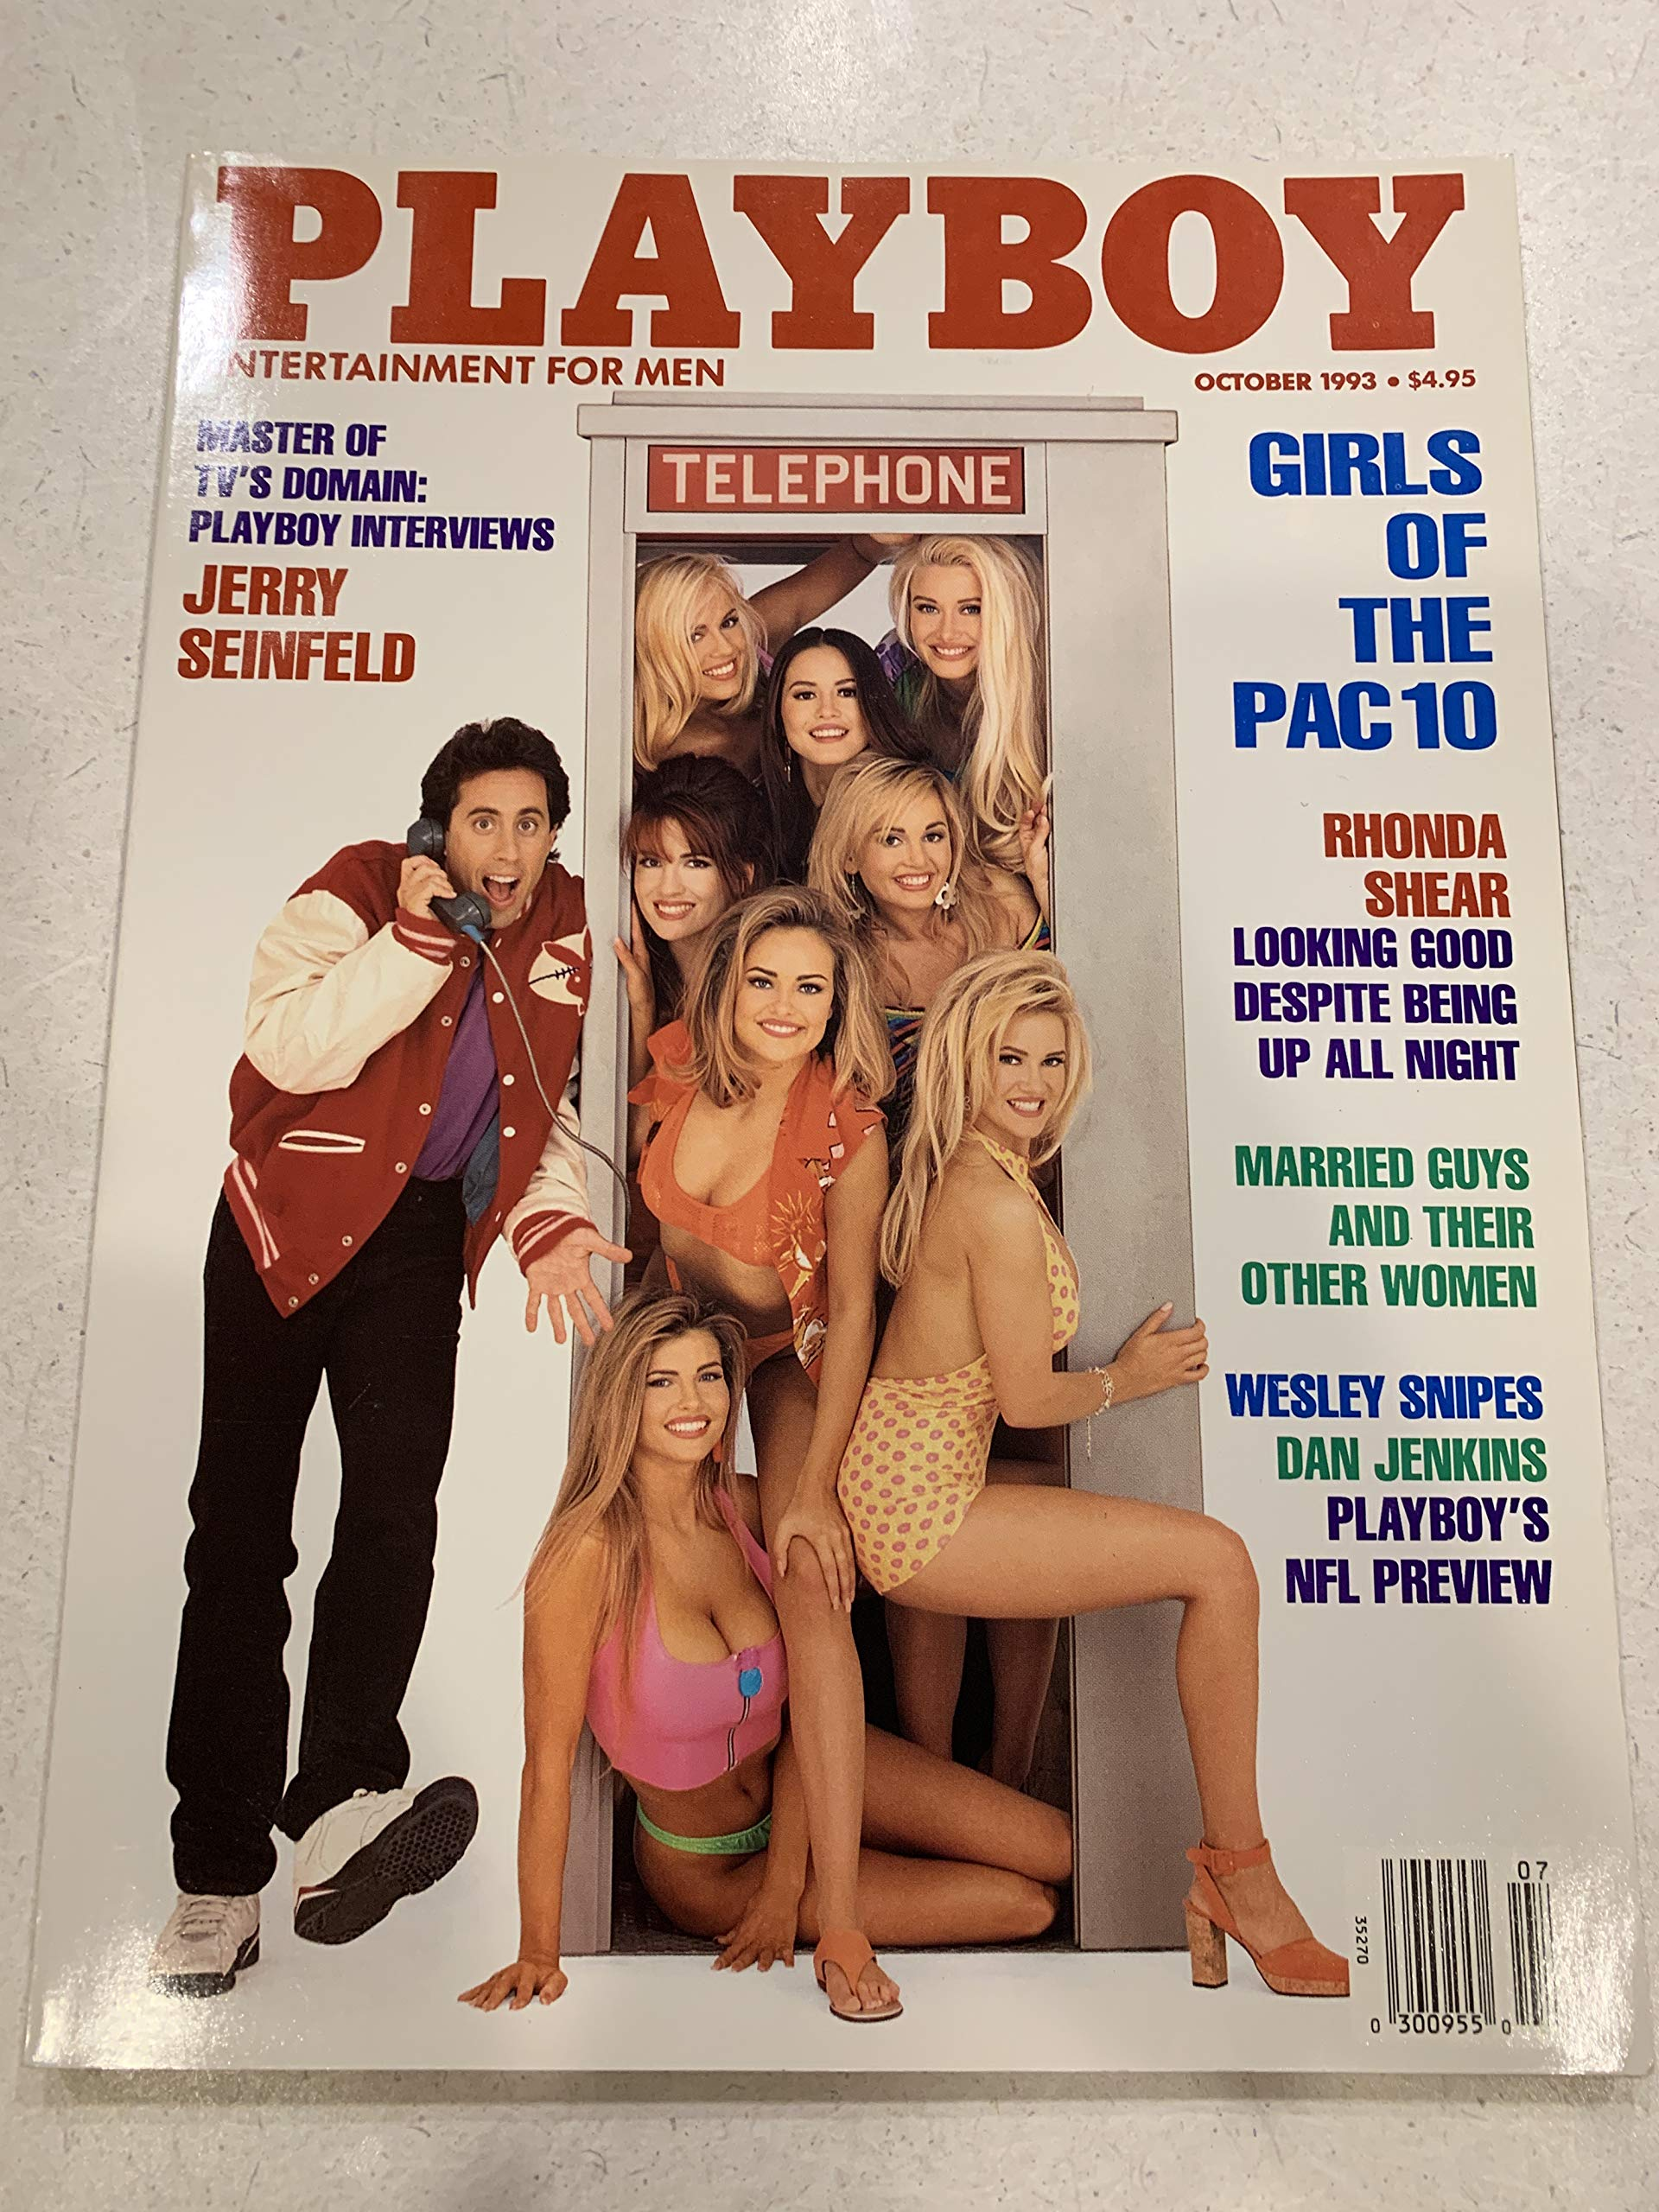 Playboy Magazine October 1993 - Jerry Seinfeld Single Issue Magazine